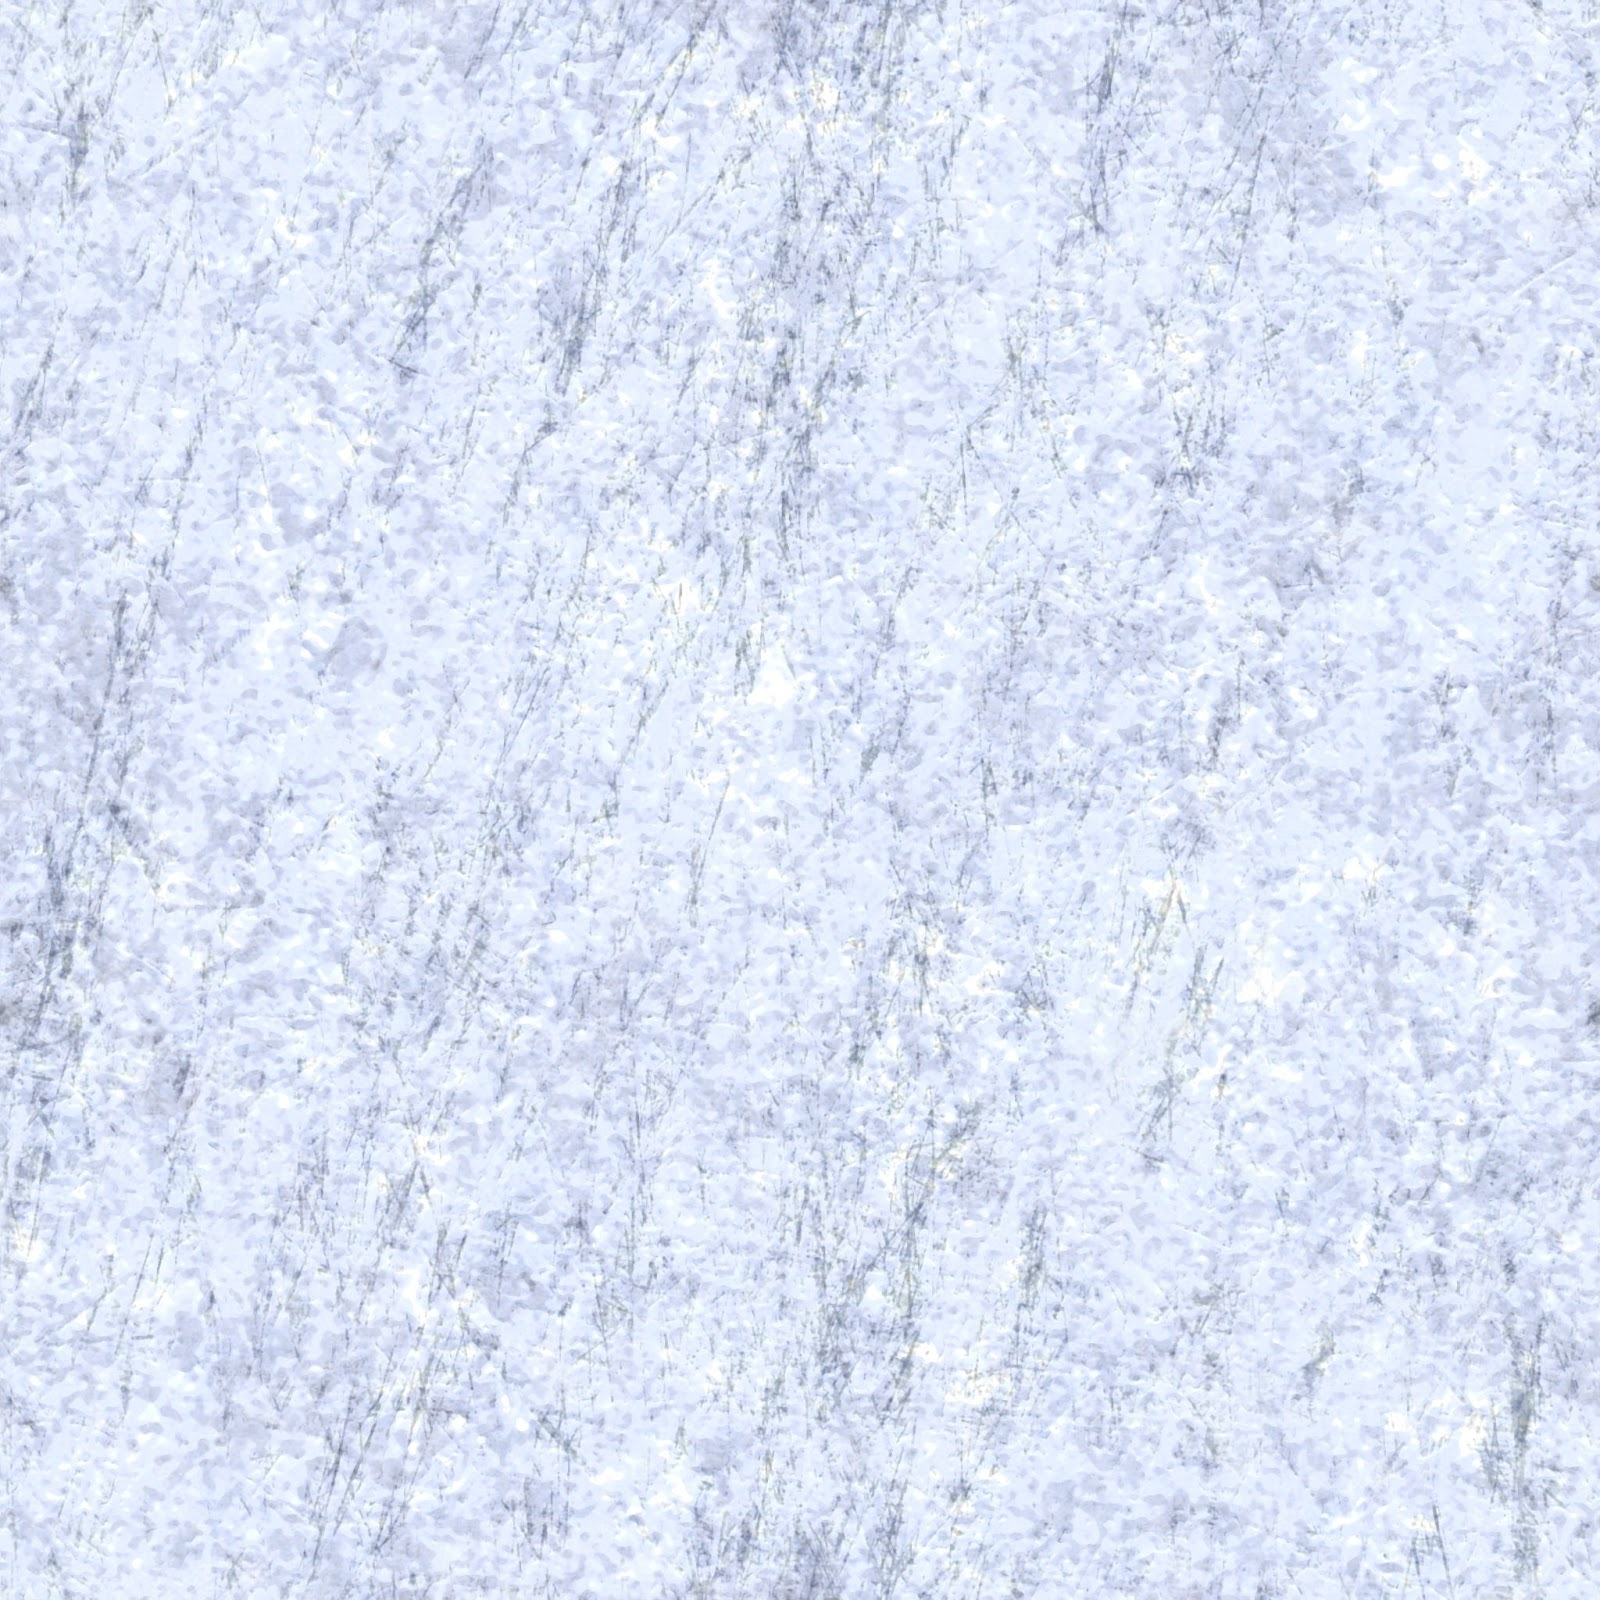 Ice_ground_snow_glacier_texture_seamless_tileable